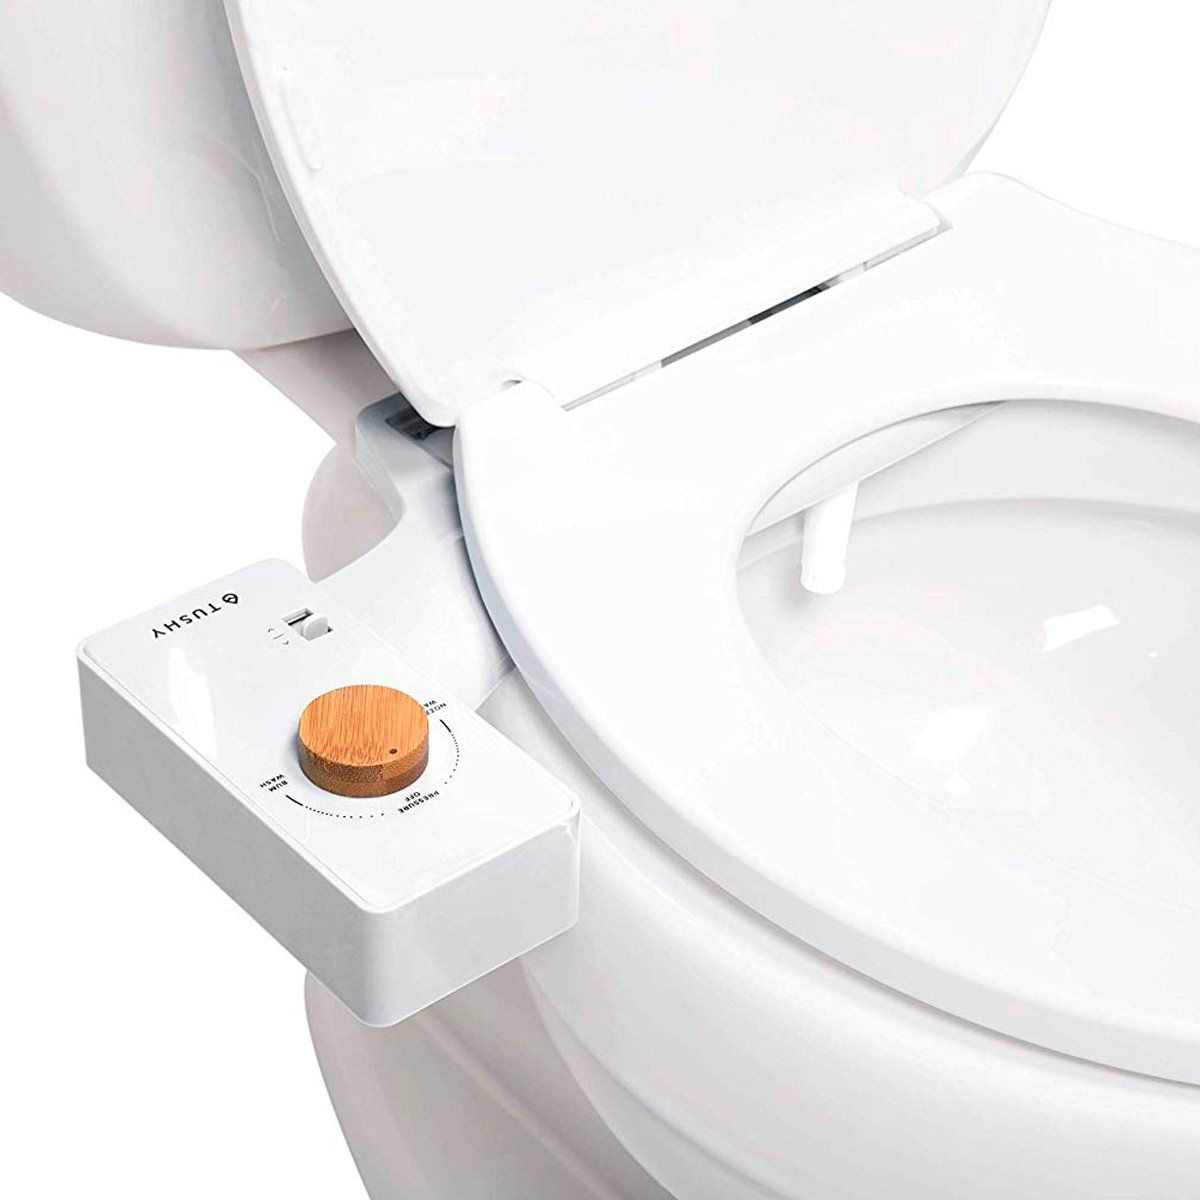 8 Bidet Attachments For Your Home Toilet In 2020 Bidet Attachment Bidet Toilet